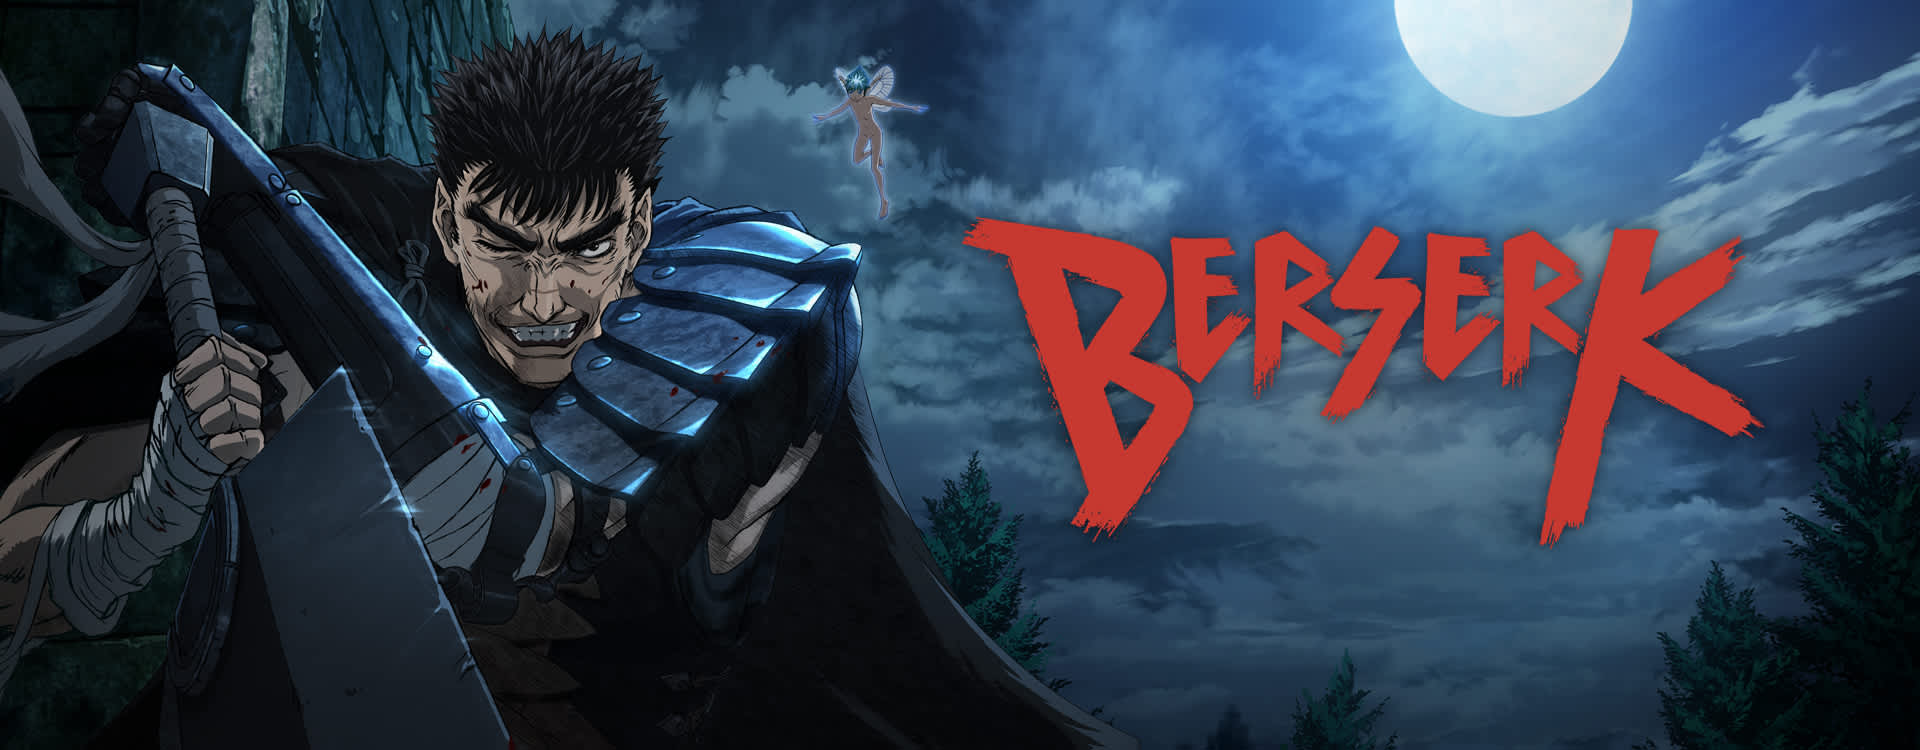 Image result for berserk header